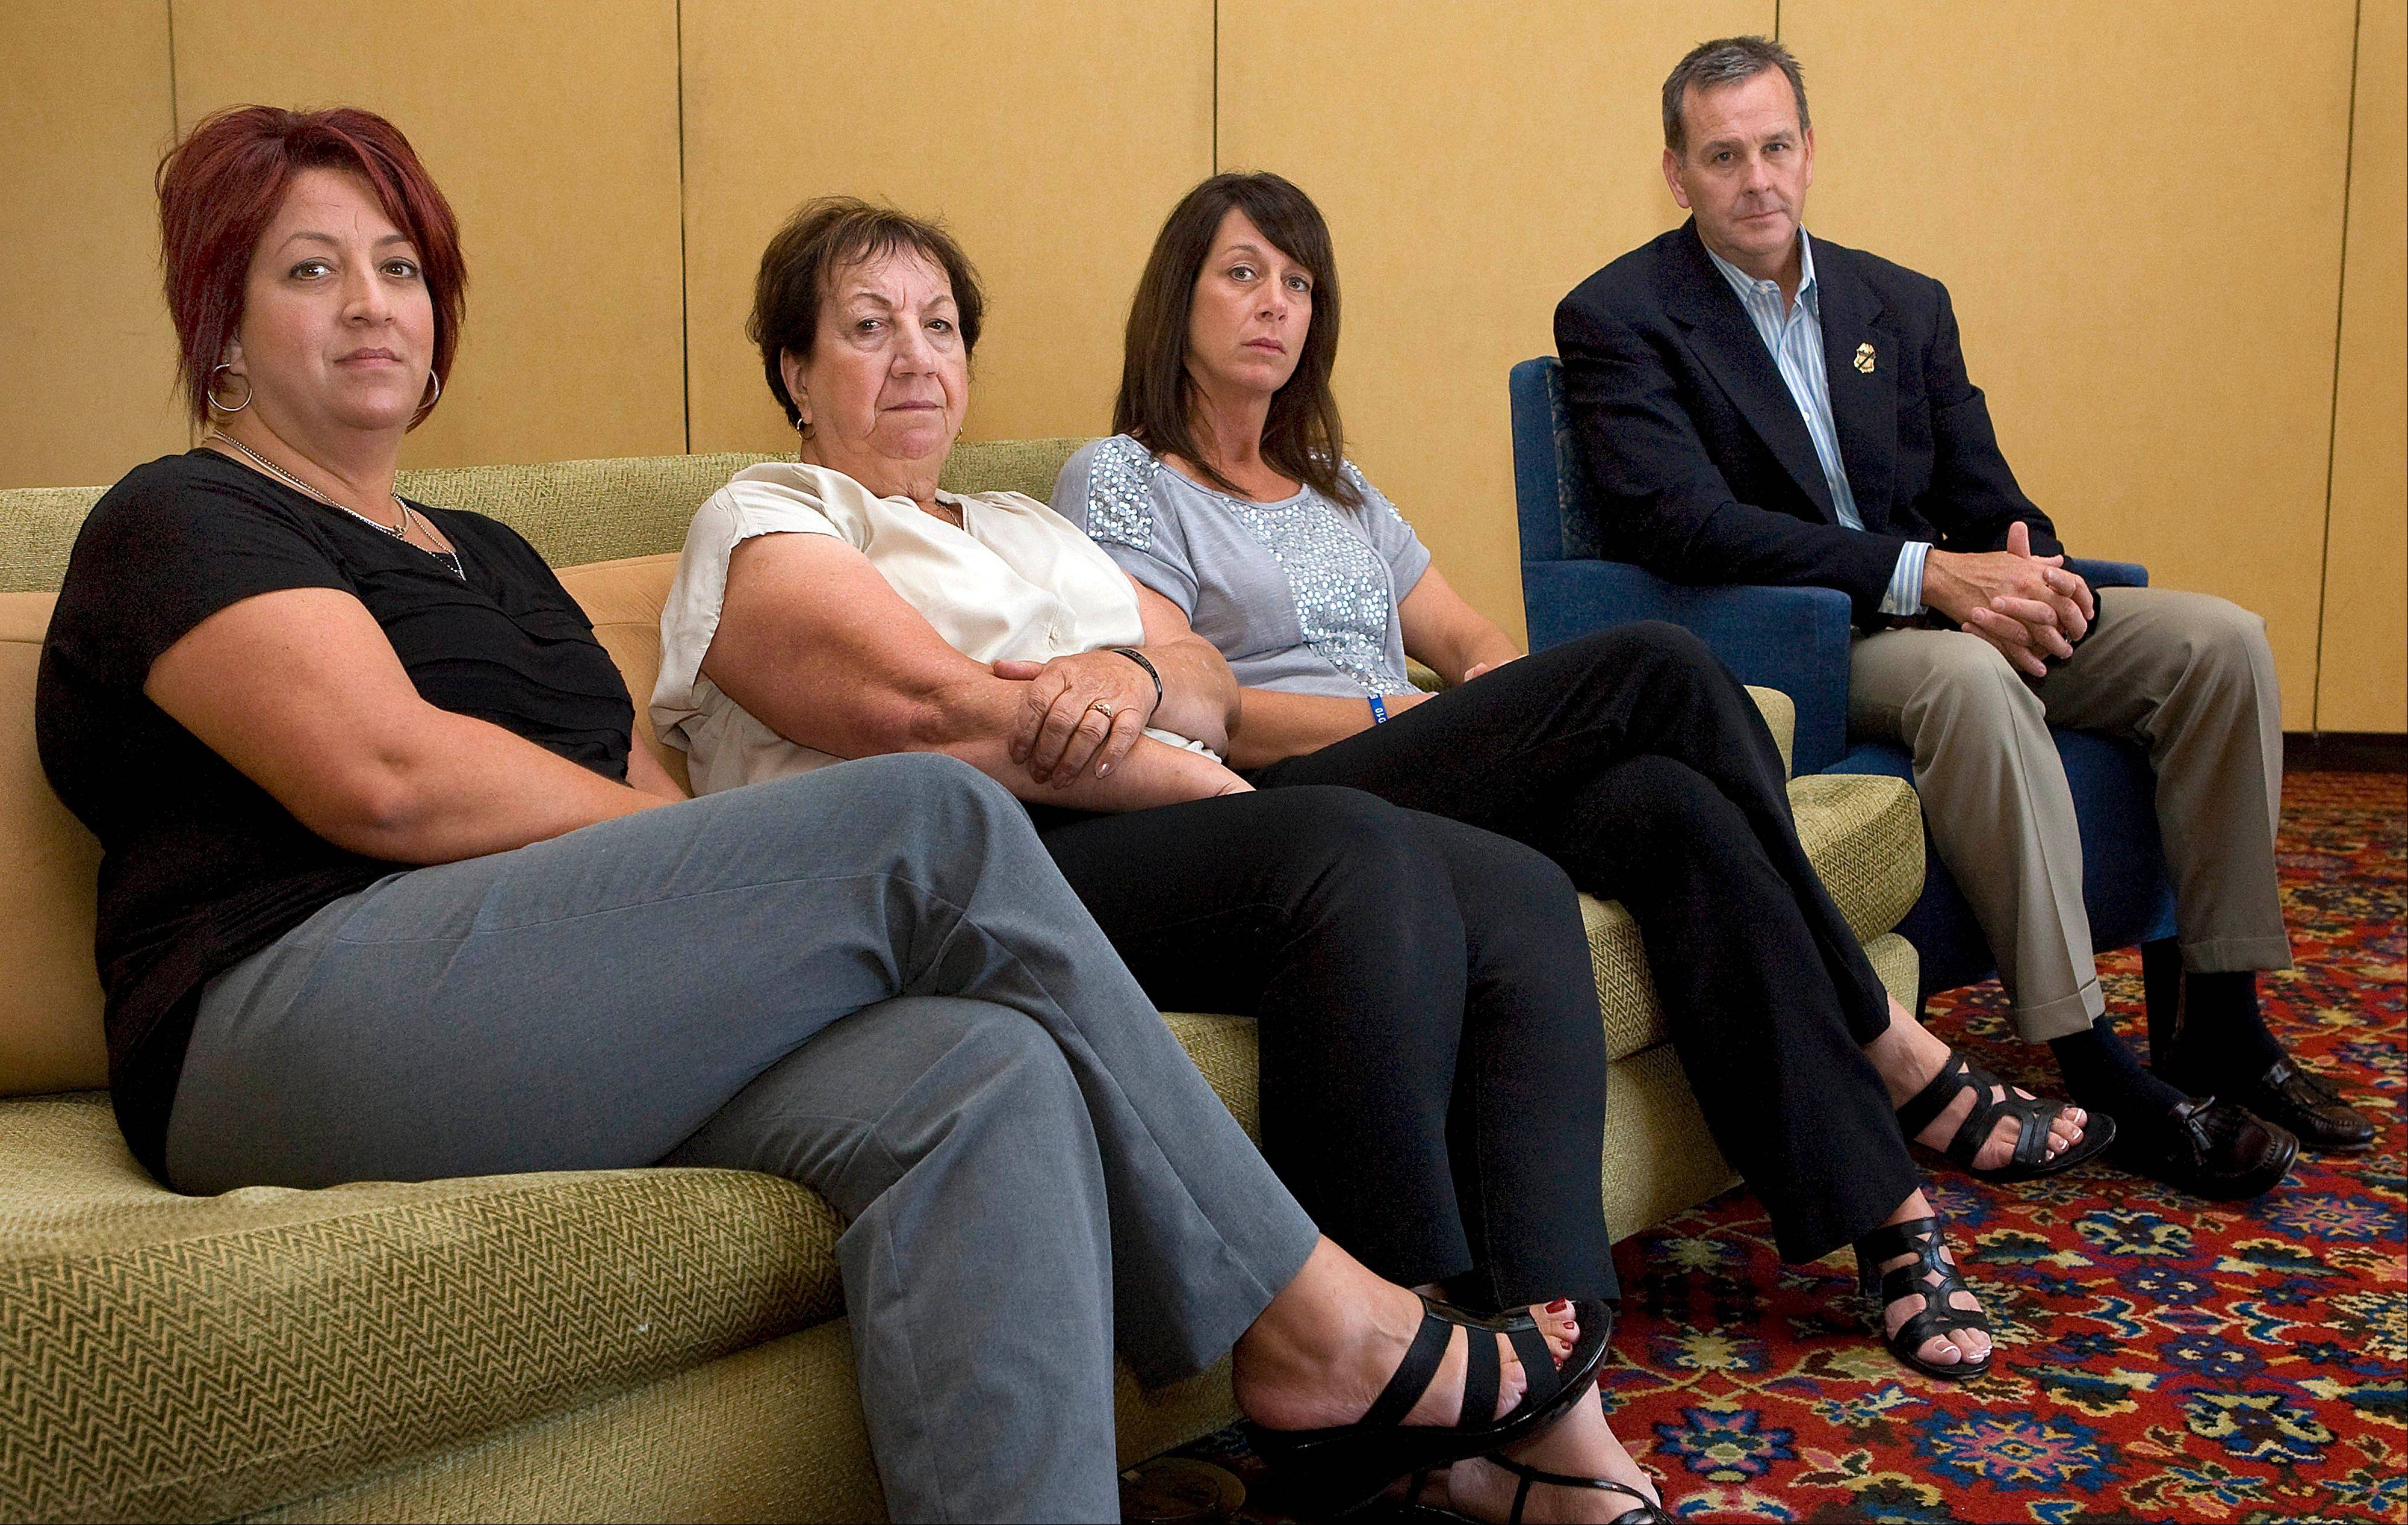 Members of Brian Terry's family, from left to right, Michelle Balogh, left, Josephine Terry, Kelly Willis and Robert Heyer, far right, pose at the Marriott-Starr Pass Resort in Tucson, Ariz., Sept. 16. Family members of Terry, an Arizona U.S. Border Agent killed in connection with a botched gun-smuggling operation, say they won't have closure until someone is held accountable for his death.